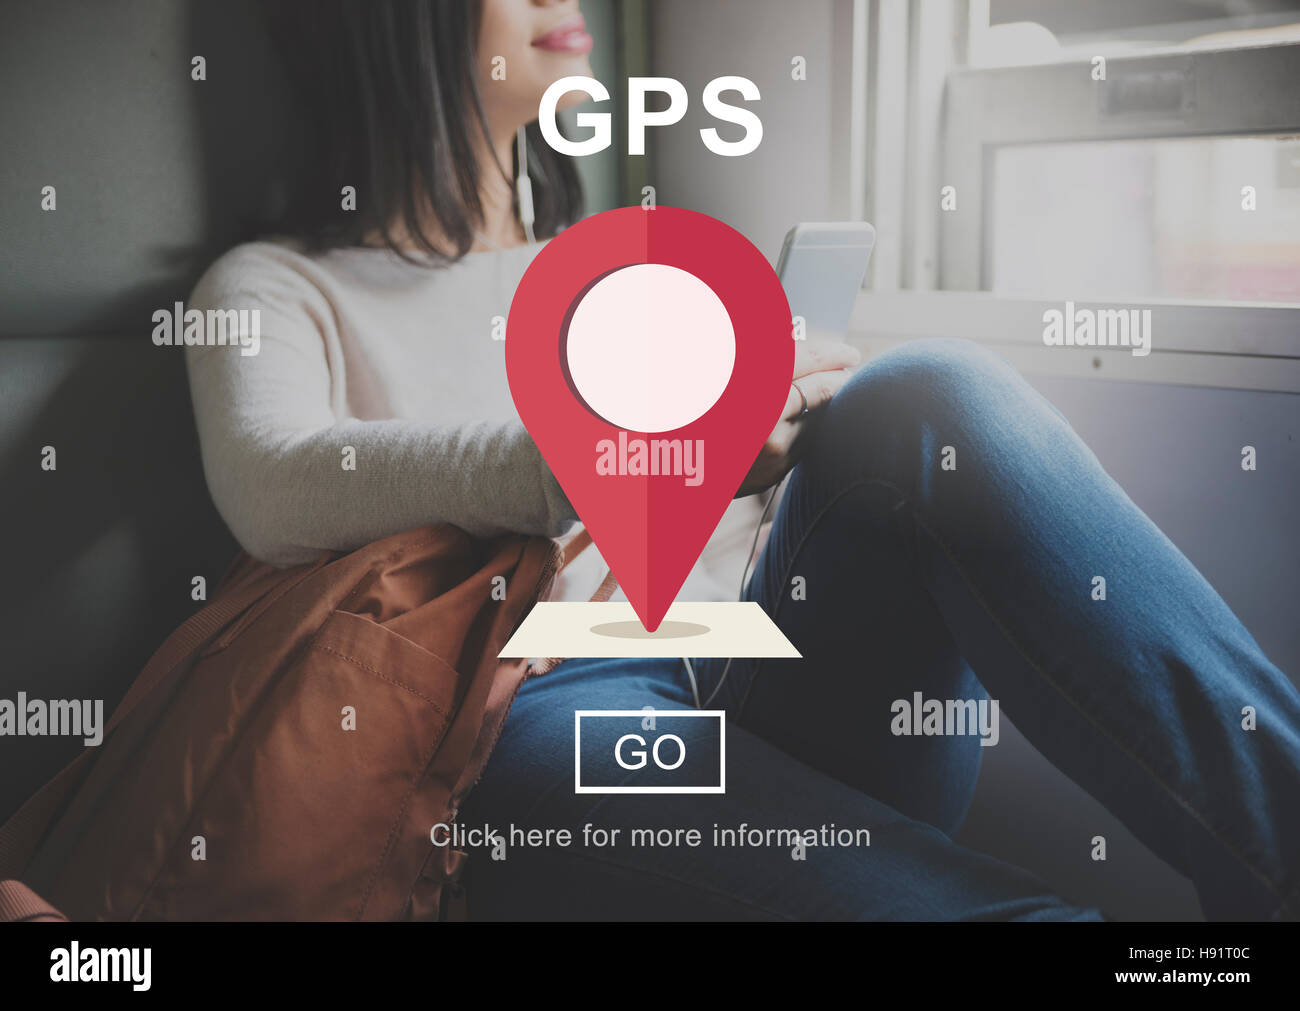 GPS Direction Electronic Guide Location Track Concept - Stock Image